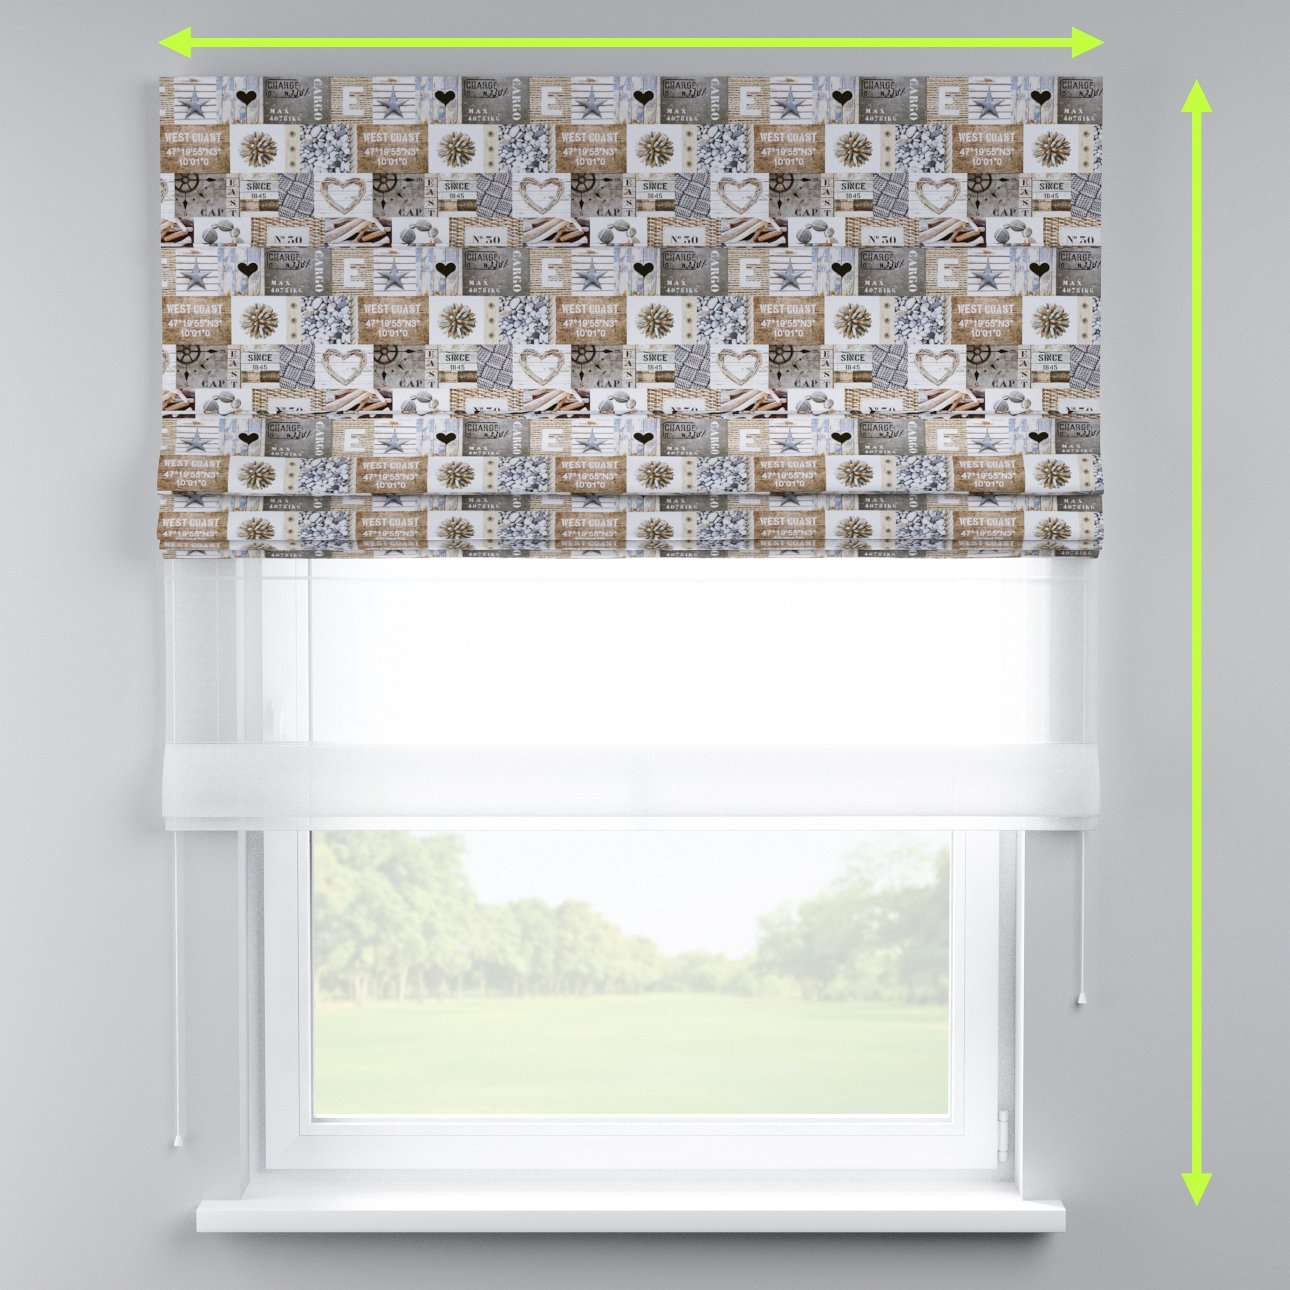 Voile and fabric roman blind (DUO II) in collection Marina, fabric: 140-15